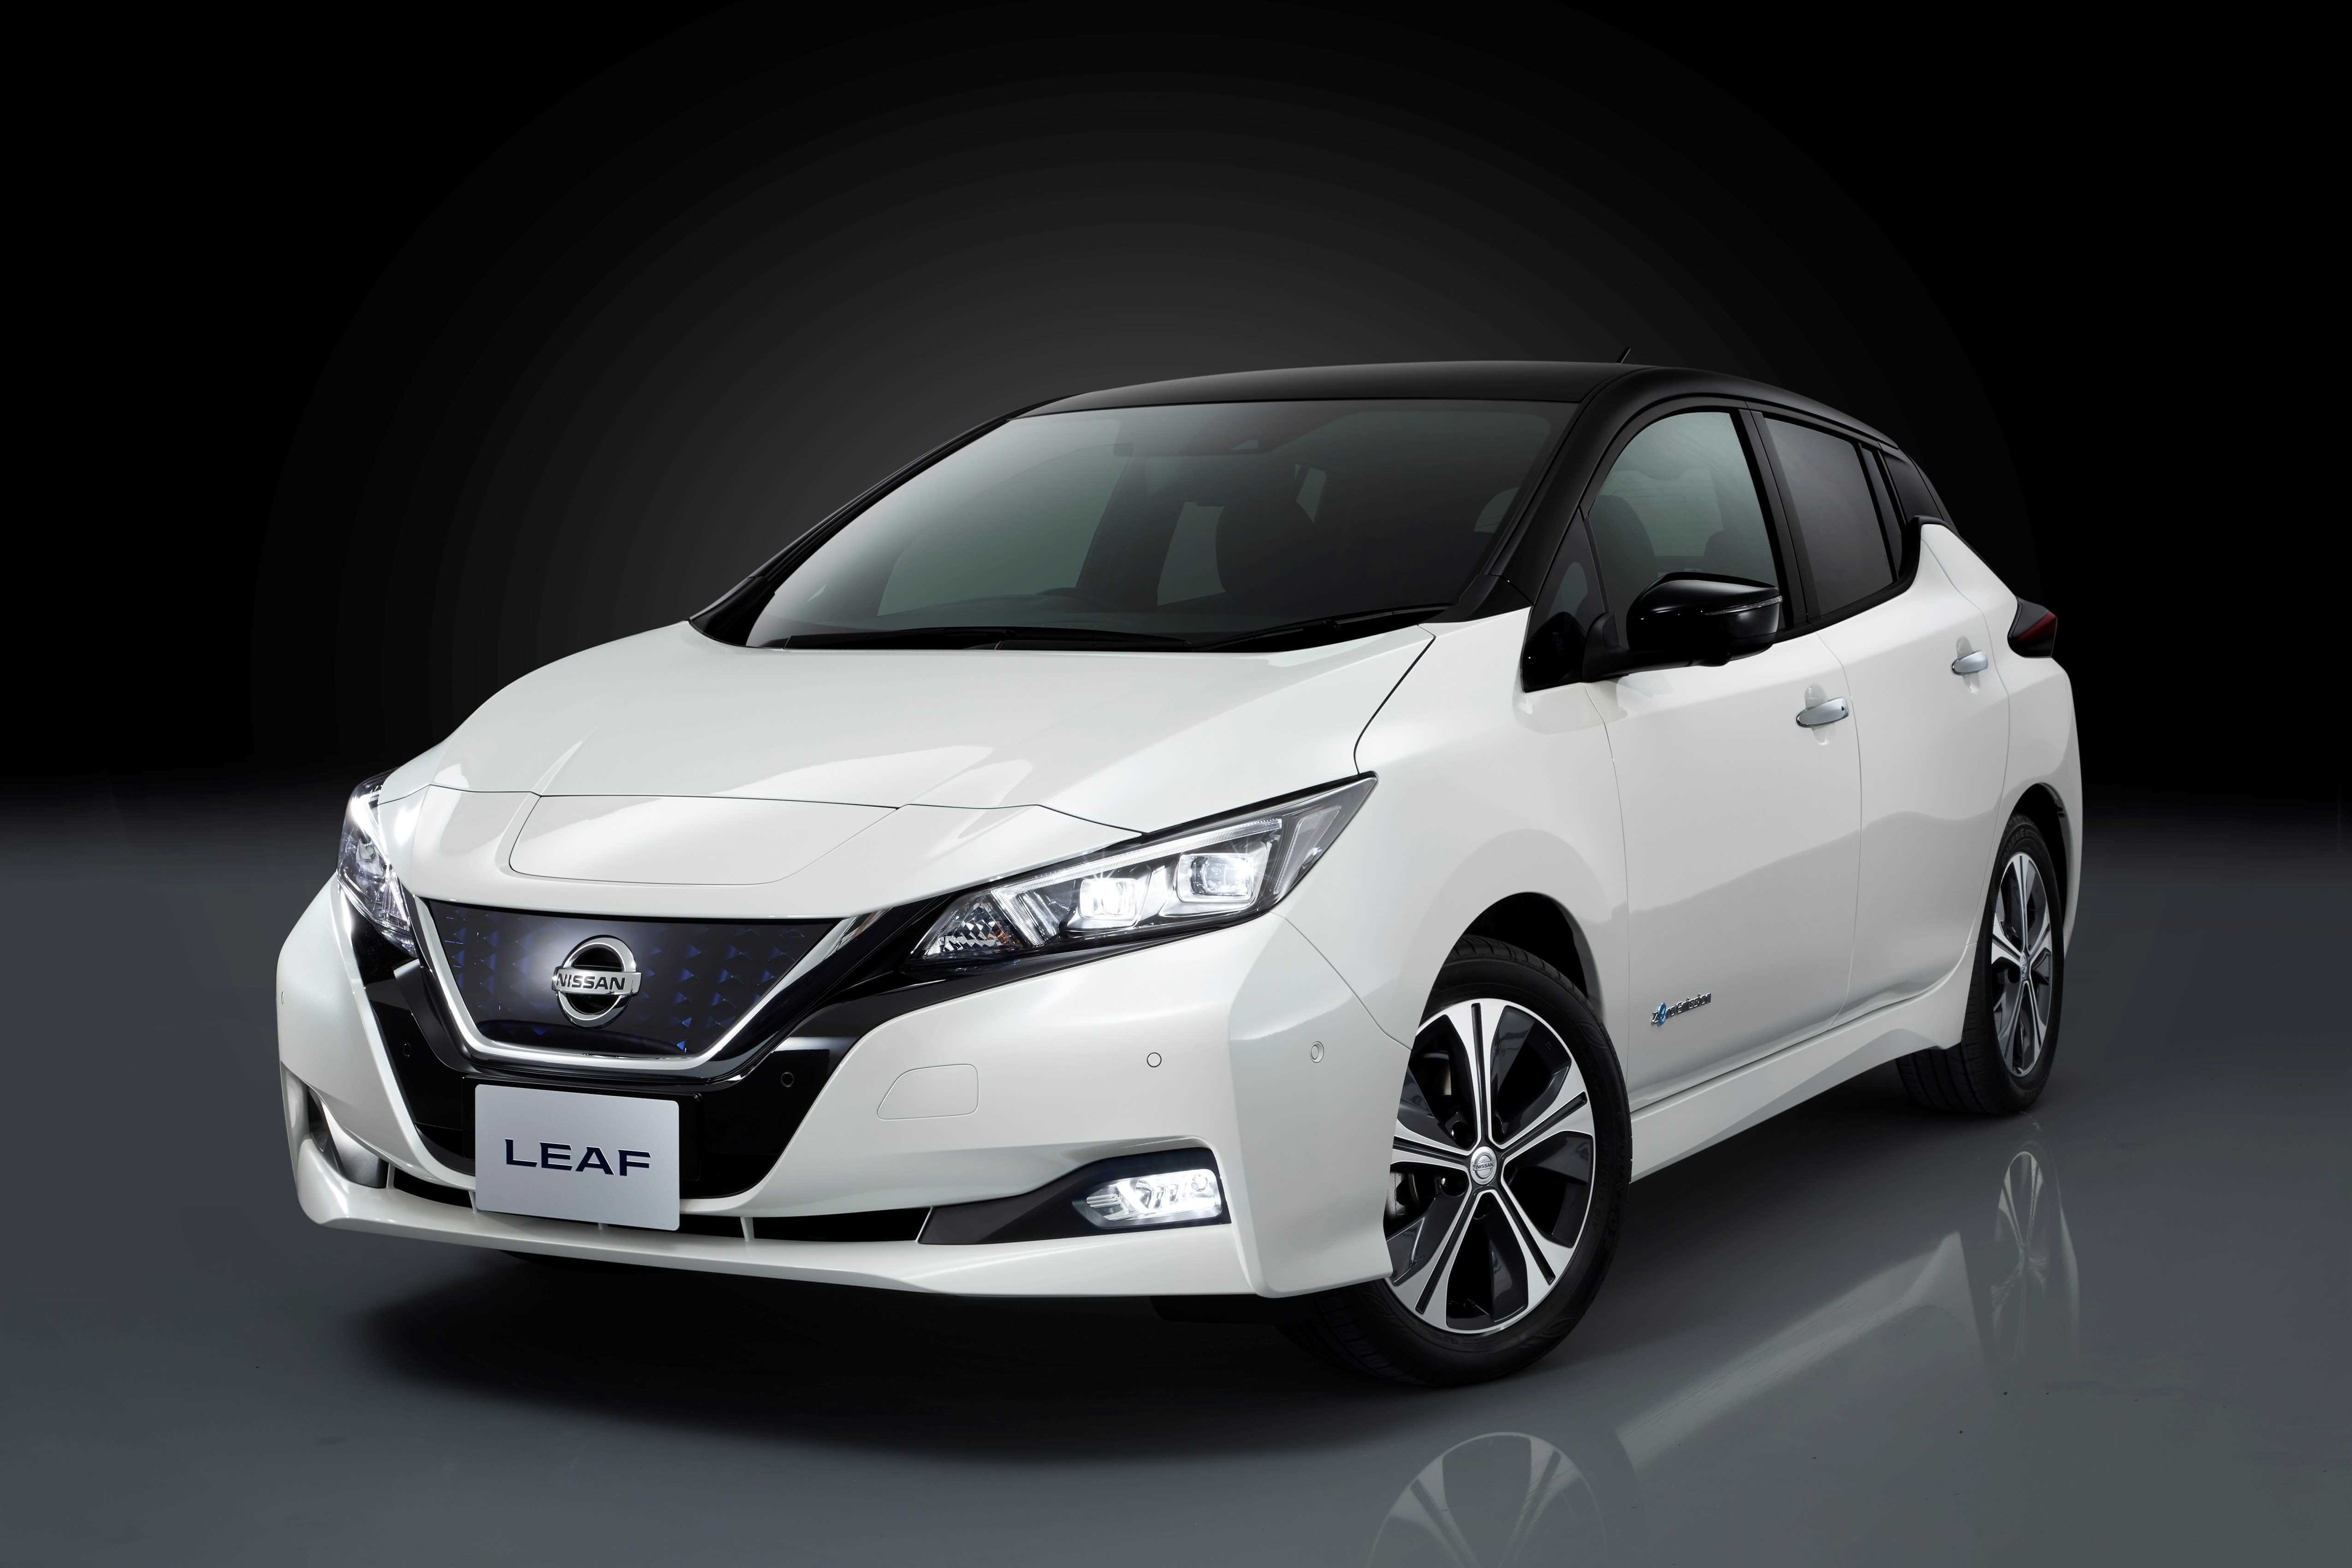 The new Nissan LEAF: the most advanced electric vehicle for the masses